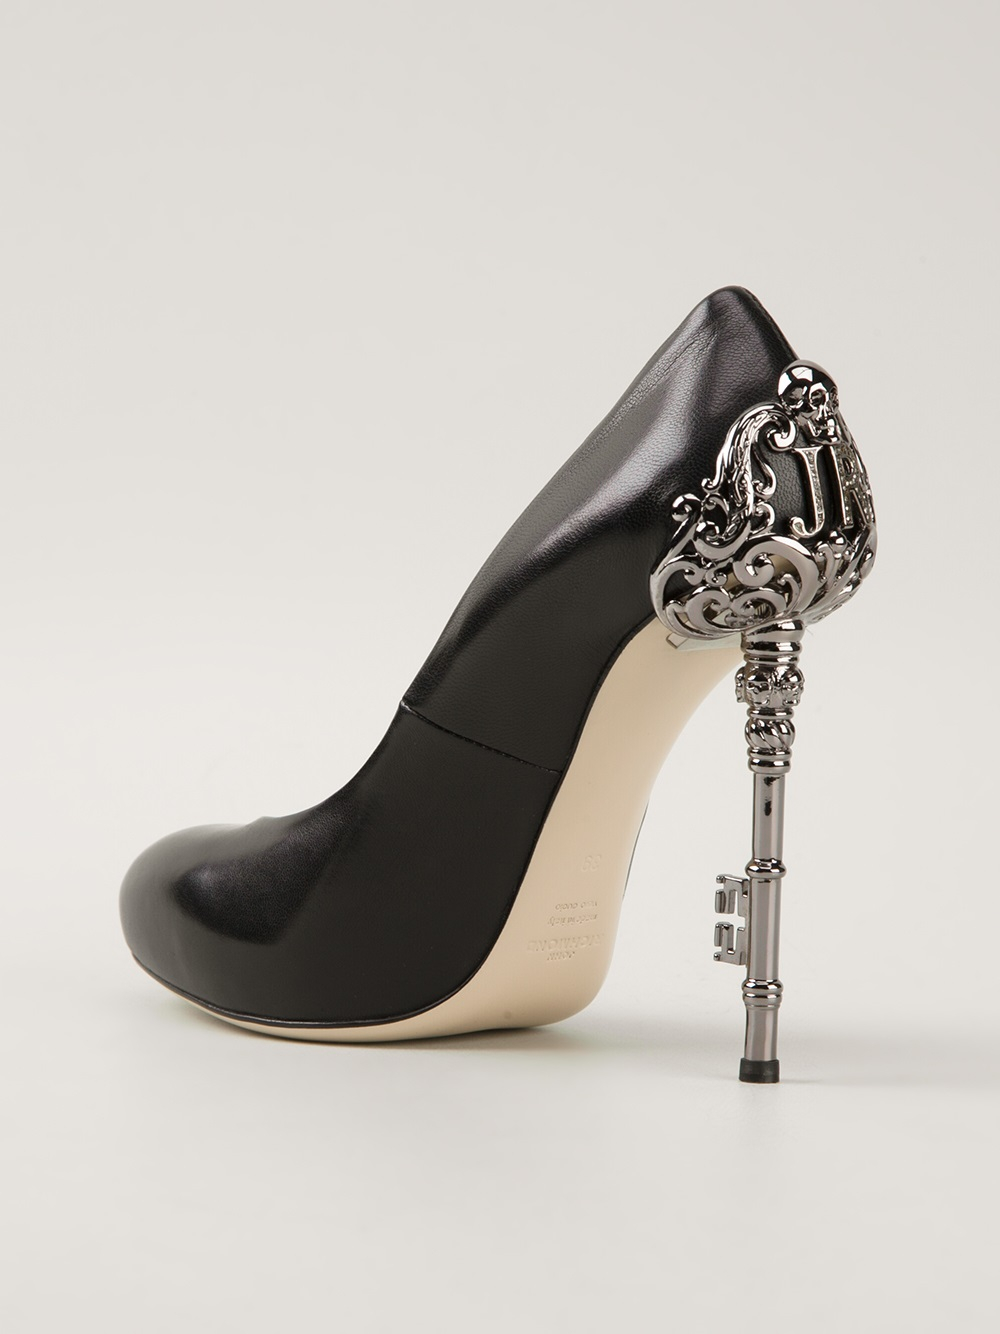 Lyst John Richmond Black Label Embellished Heel Pump In